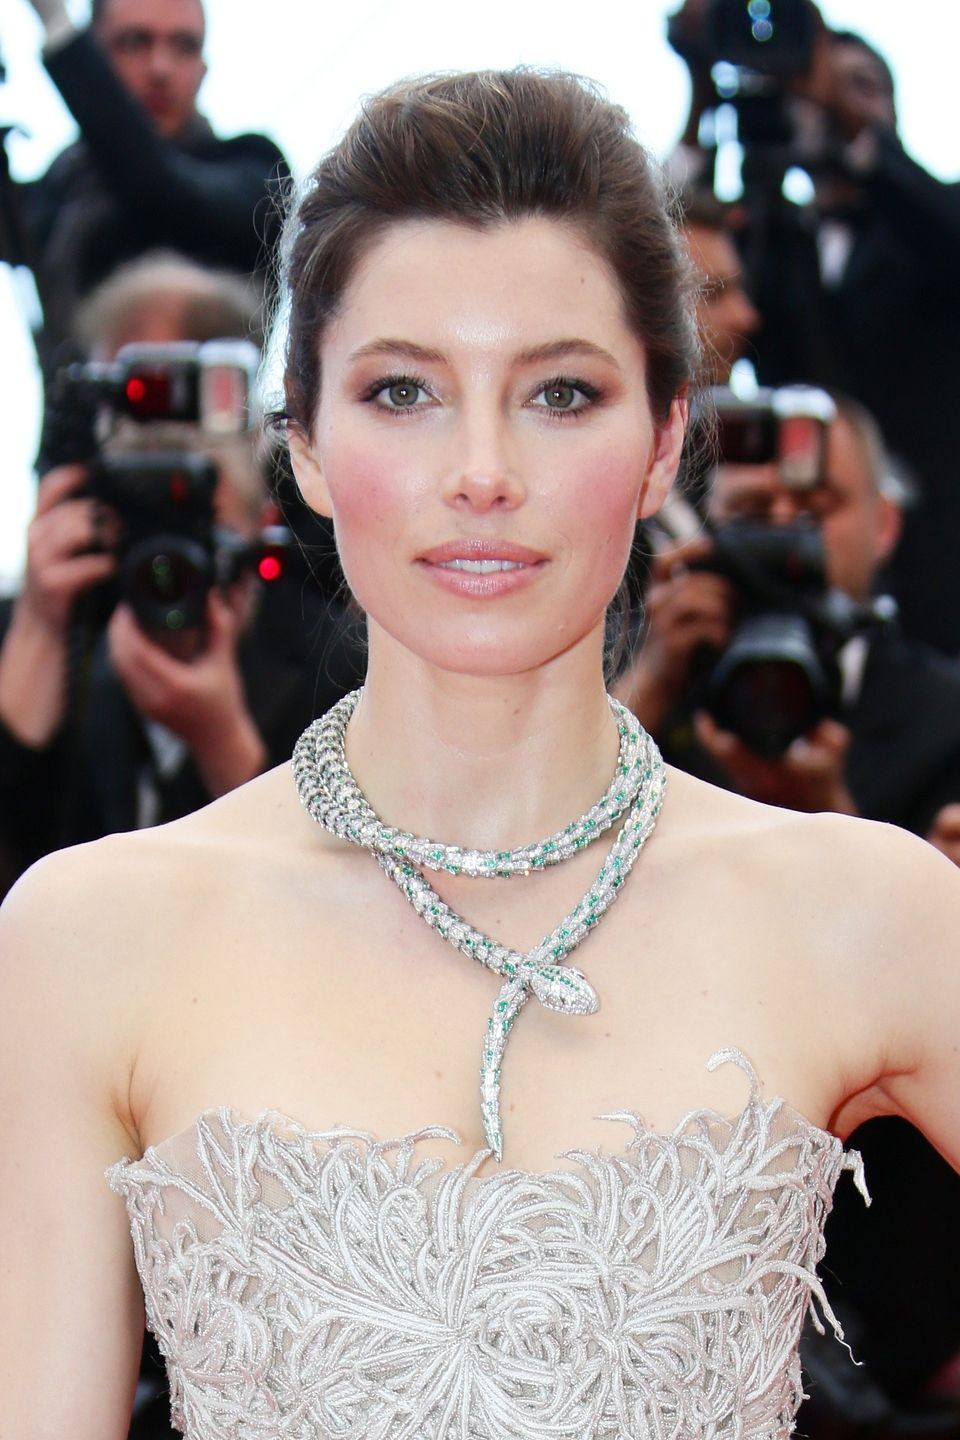 The star radiated at Cannes 2013 with this awesome snake-like necklace.